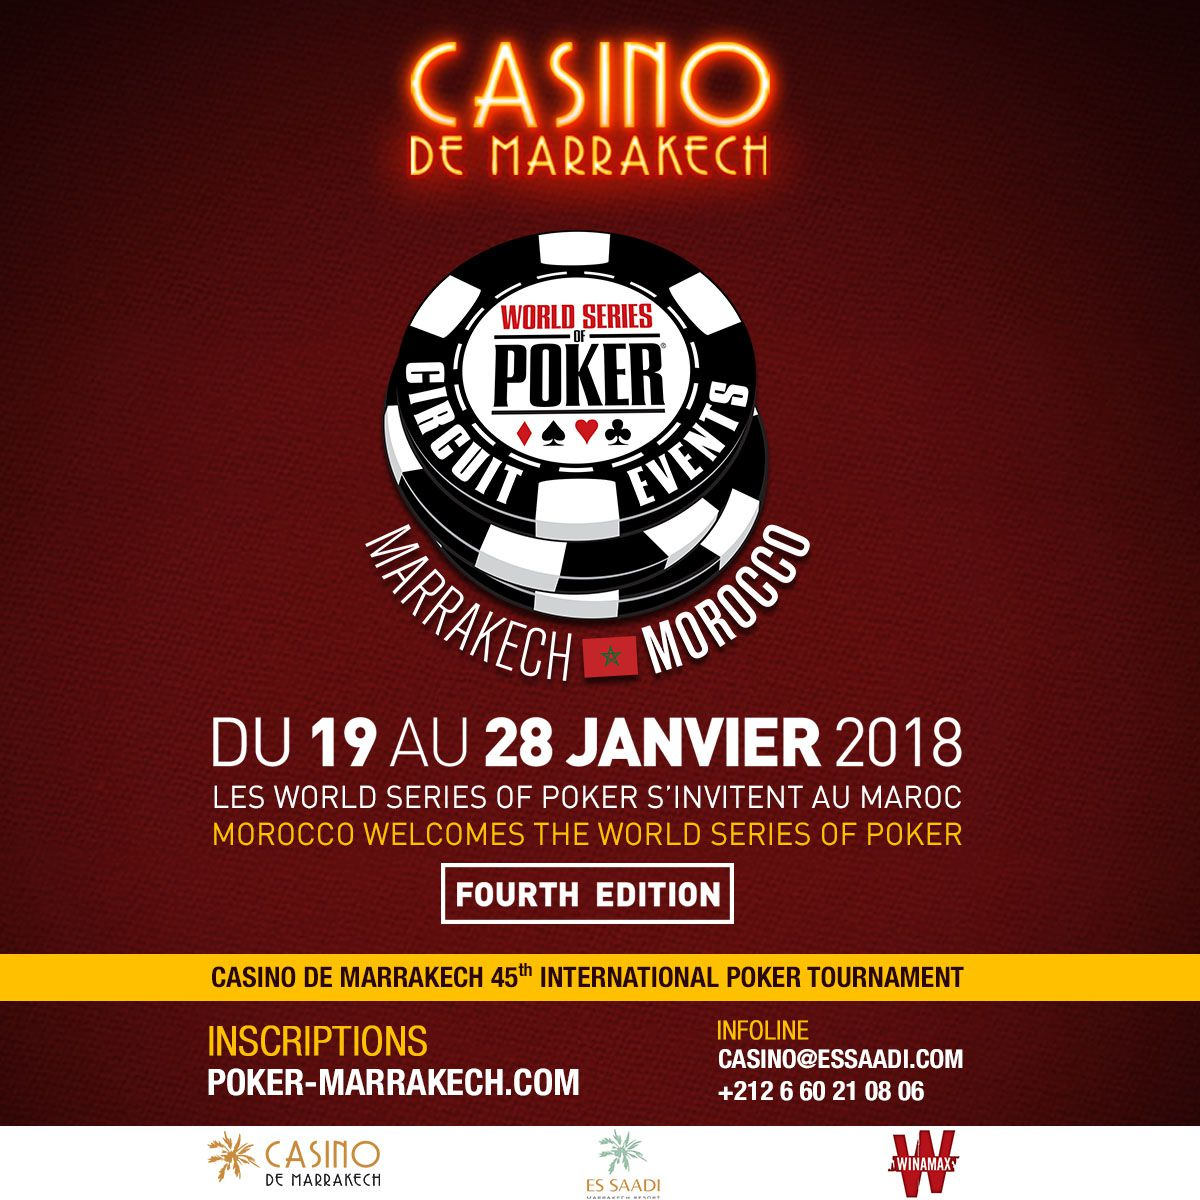 Les world series of poker circuit events débarquent de nouveau au casino de marrakech du 19 au 28 janvier 2018